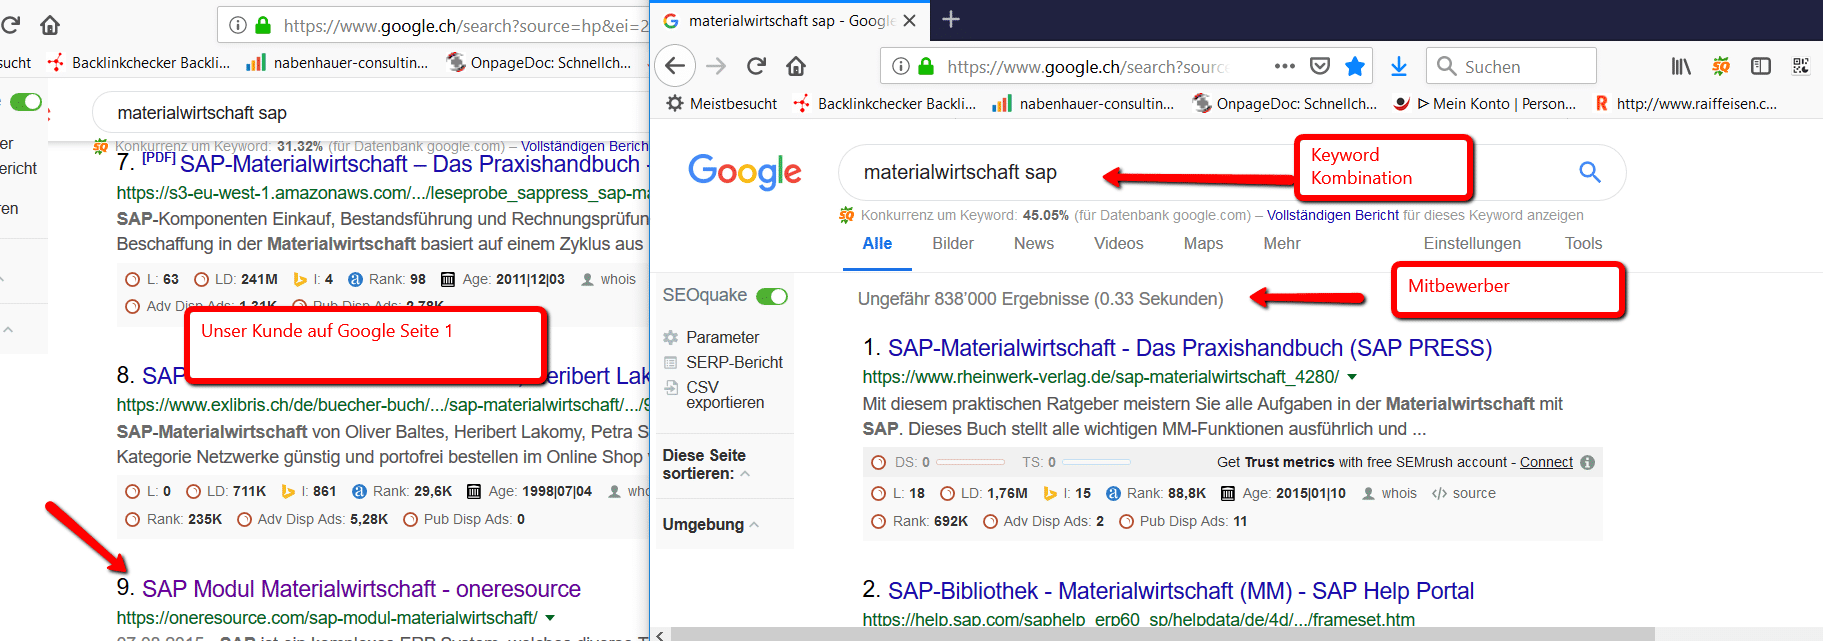 keyword_materialwirtschaft_sap